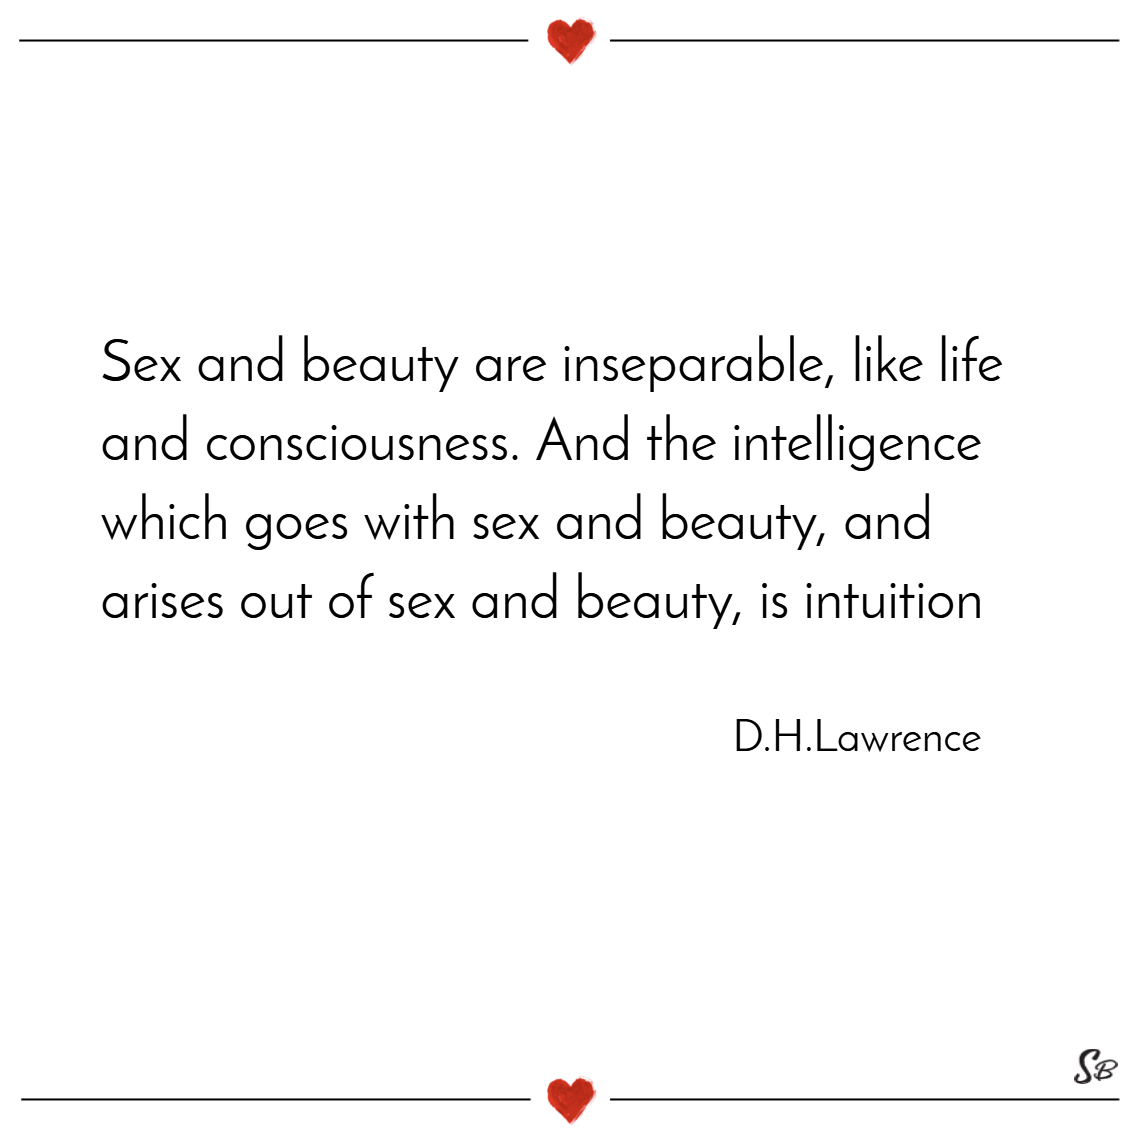 Sex and beauty are inseparable, like life and consciousness. and the intelligence which goes with sex and beauty, and arises out of sex and beauty, is intuition. – d. h. lawrence (1)